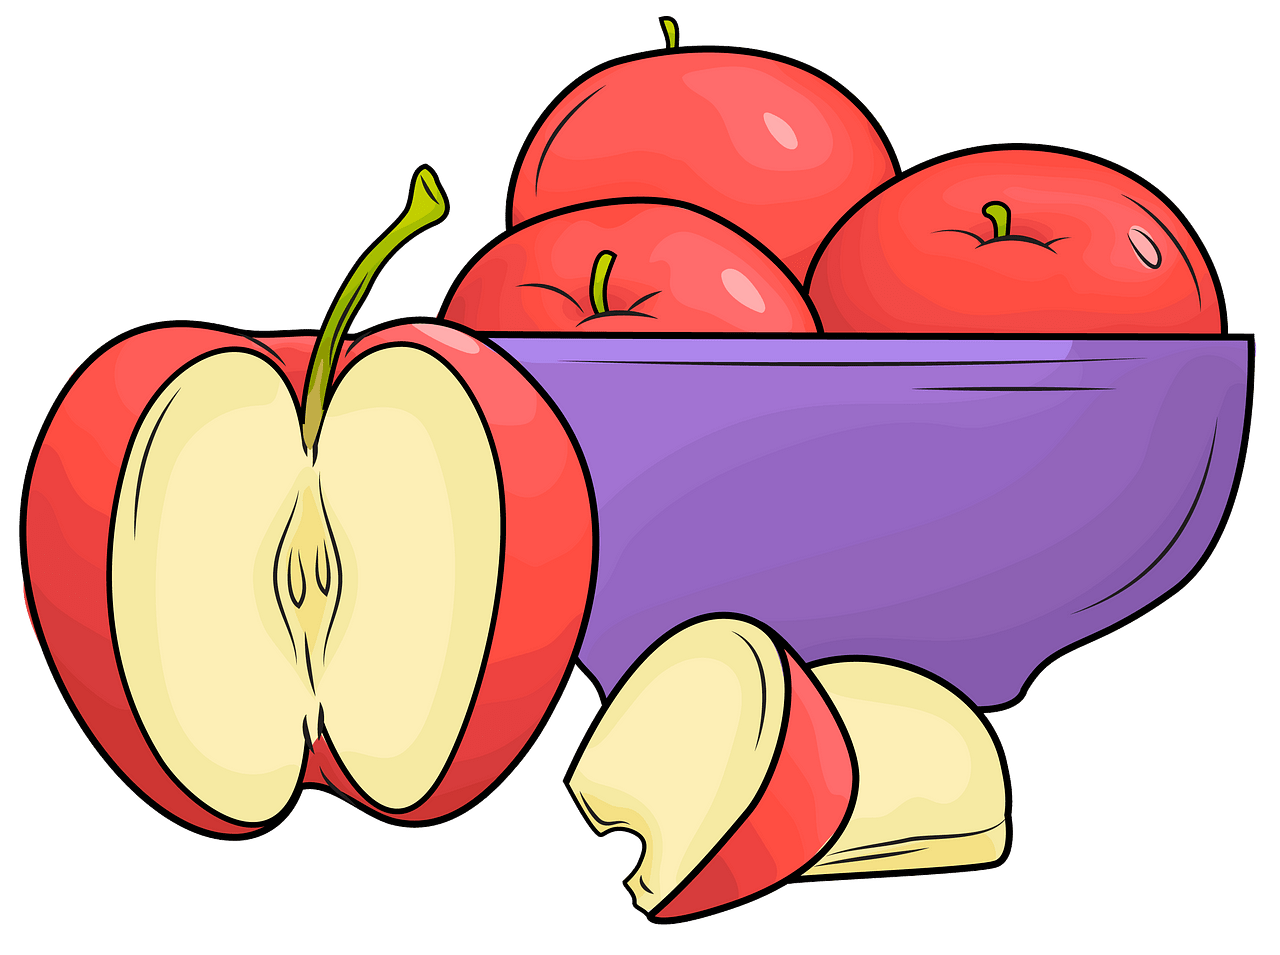 A plate of apples clipart. Free download..